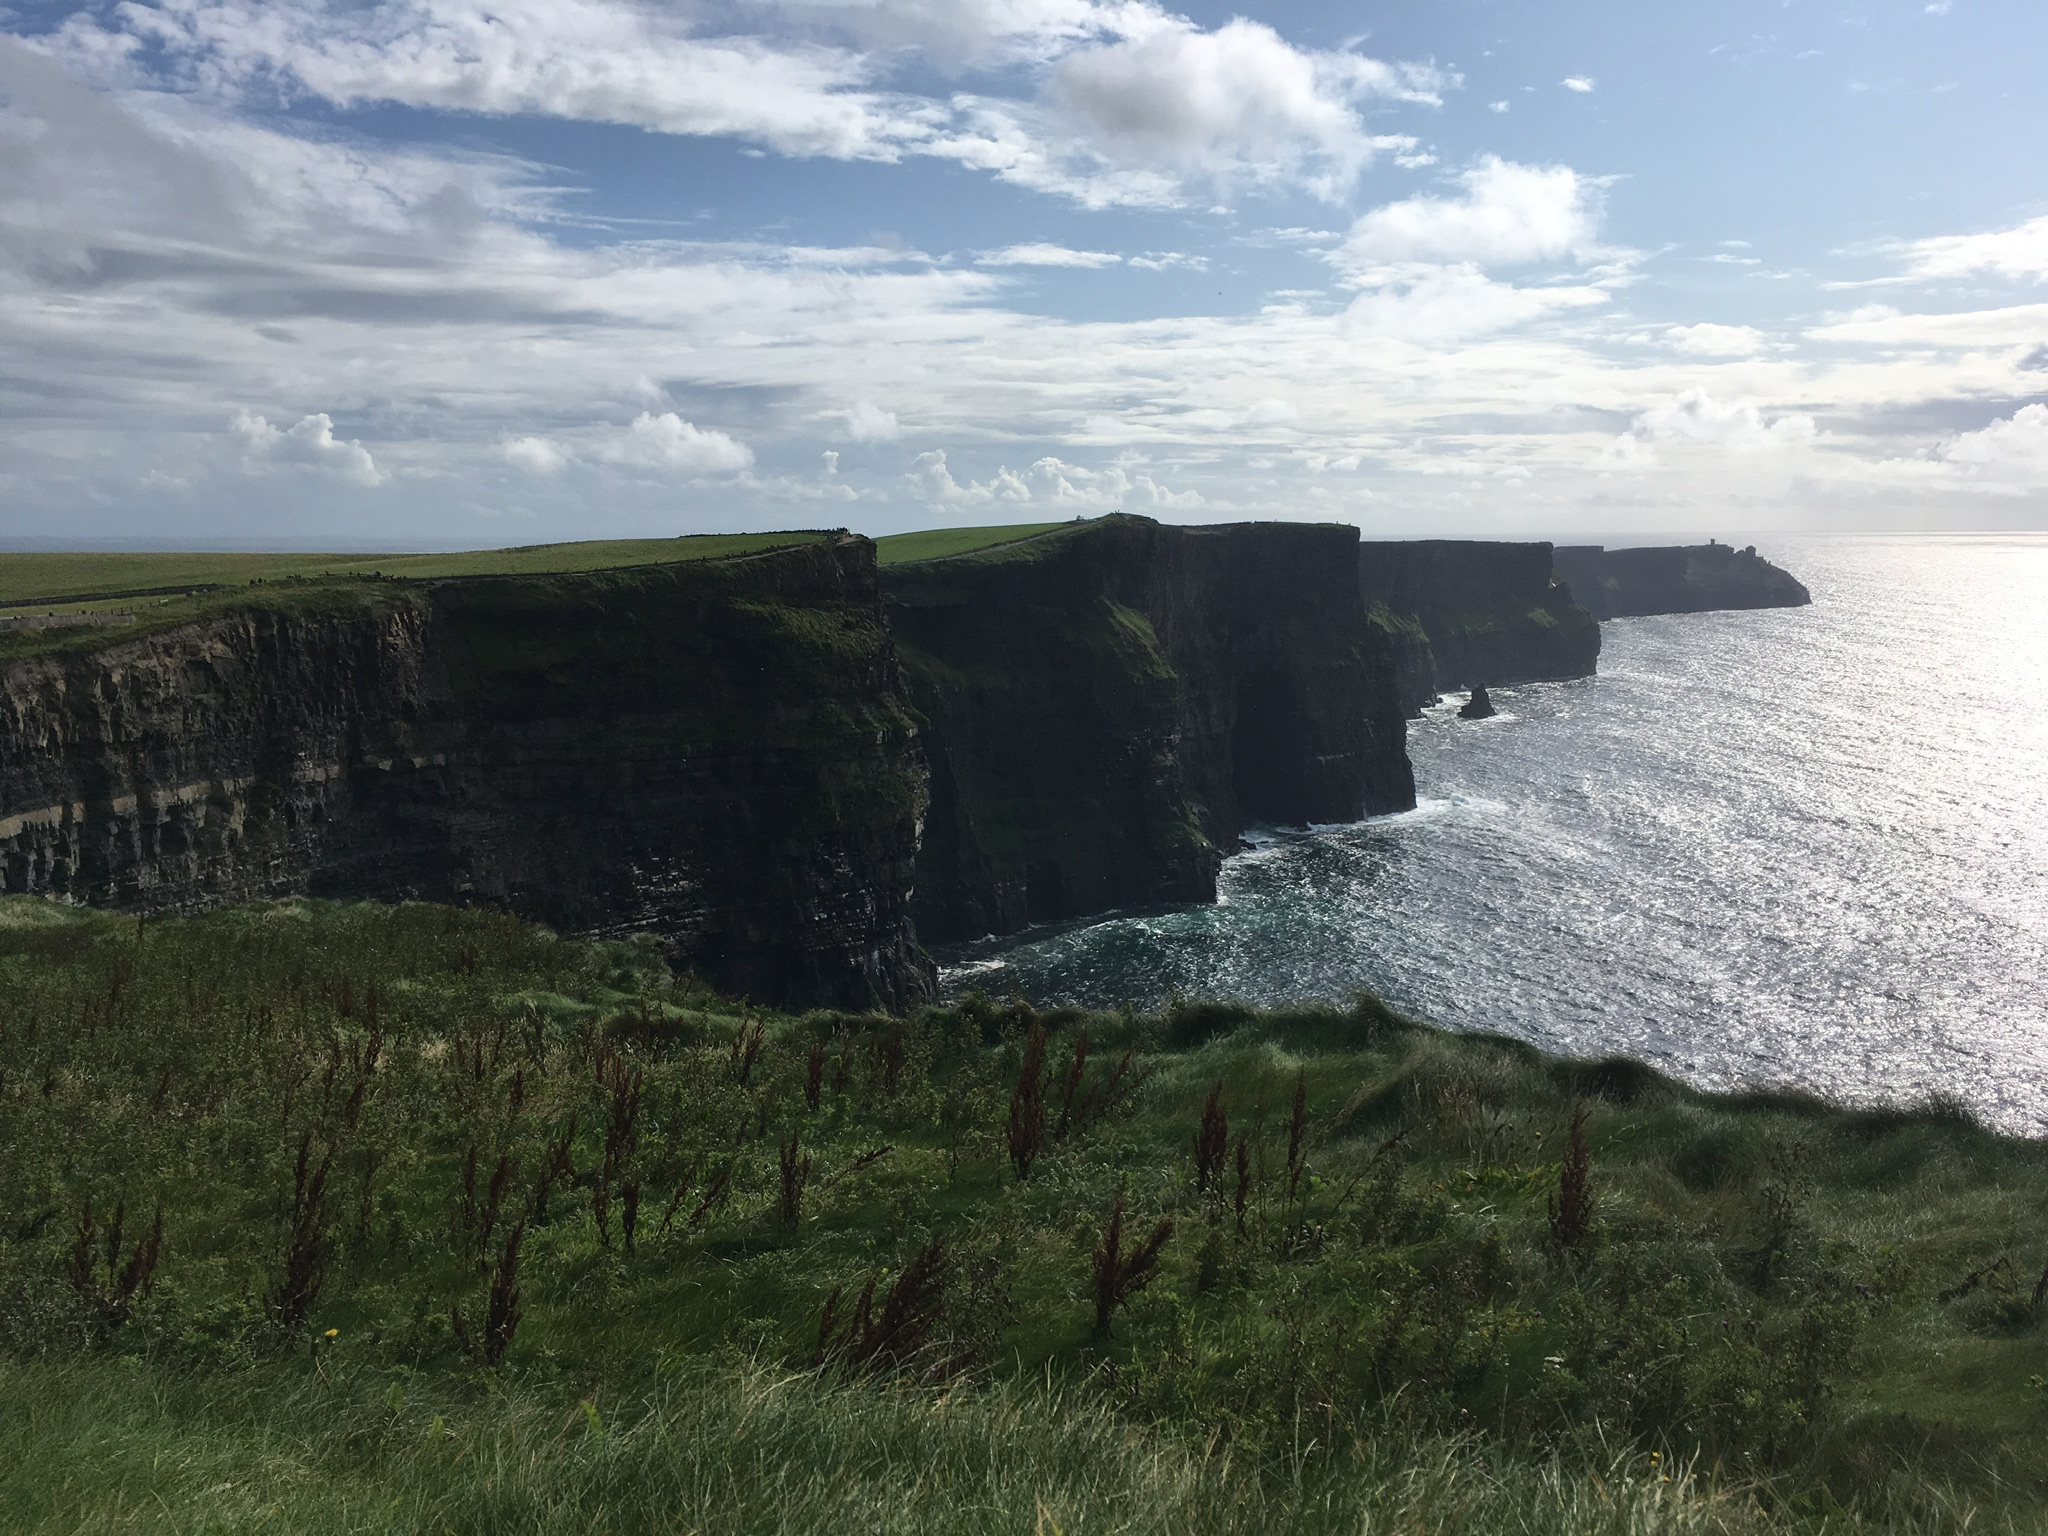 The Cliffs of Moher, just one of the amazing things I saw on my holidays.